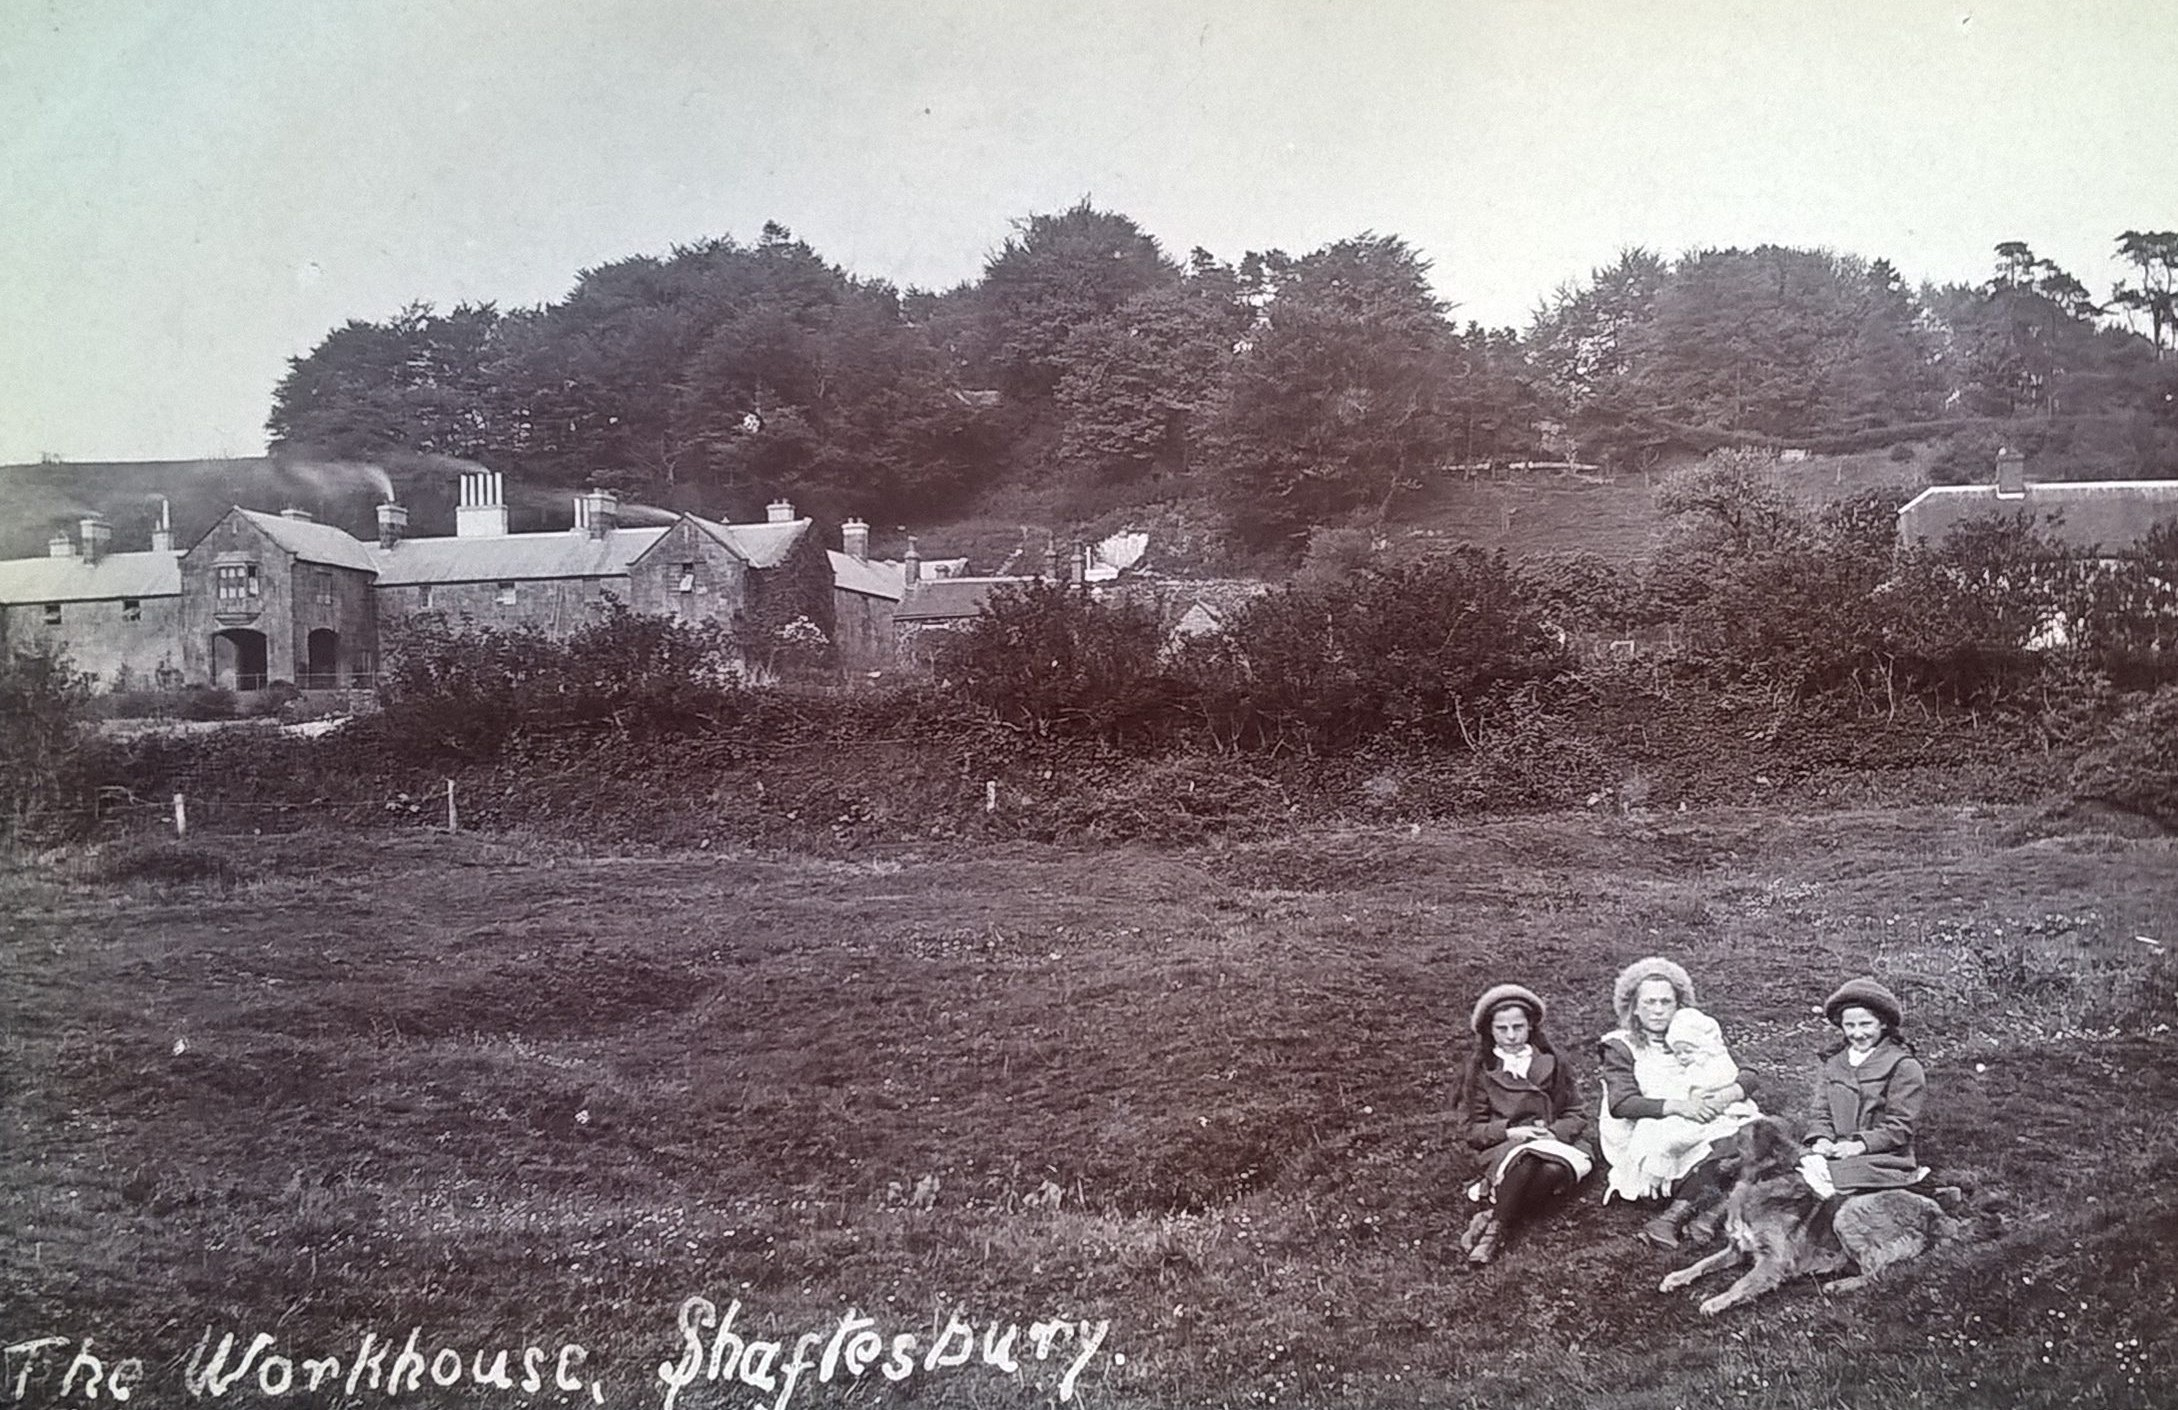 Shaftesbury Workhouse